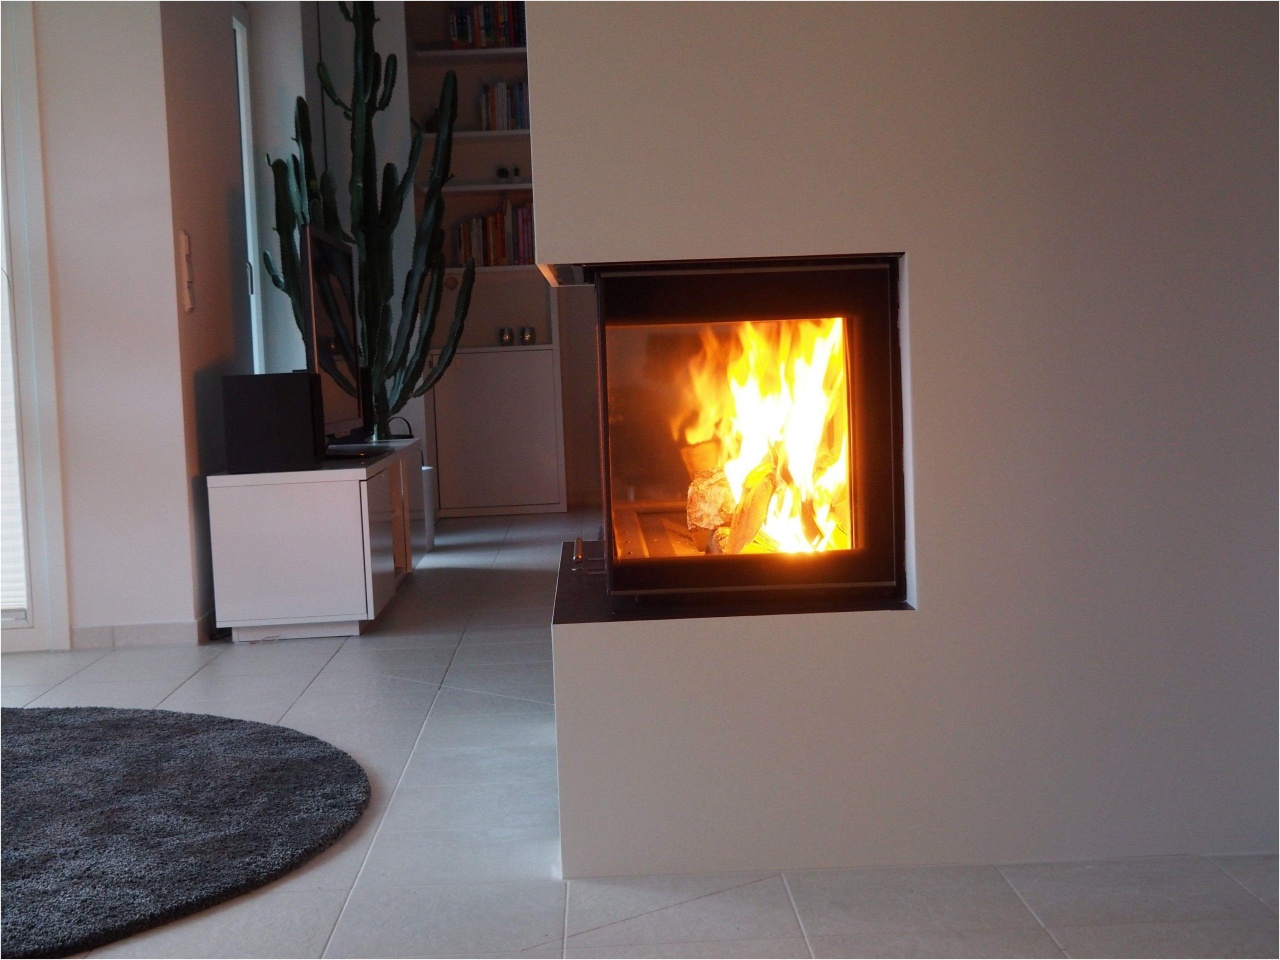 Full Size of How To Build A Fire In Fireplace   Kamin Im Wohnzimmer Inspirierend Design Wohnzimmer Mit Kamin Wohnzimmer Wohnzimmer Kamin